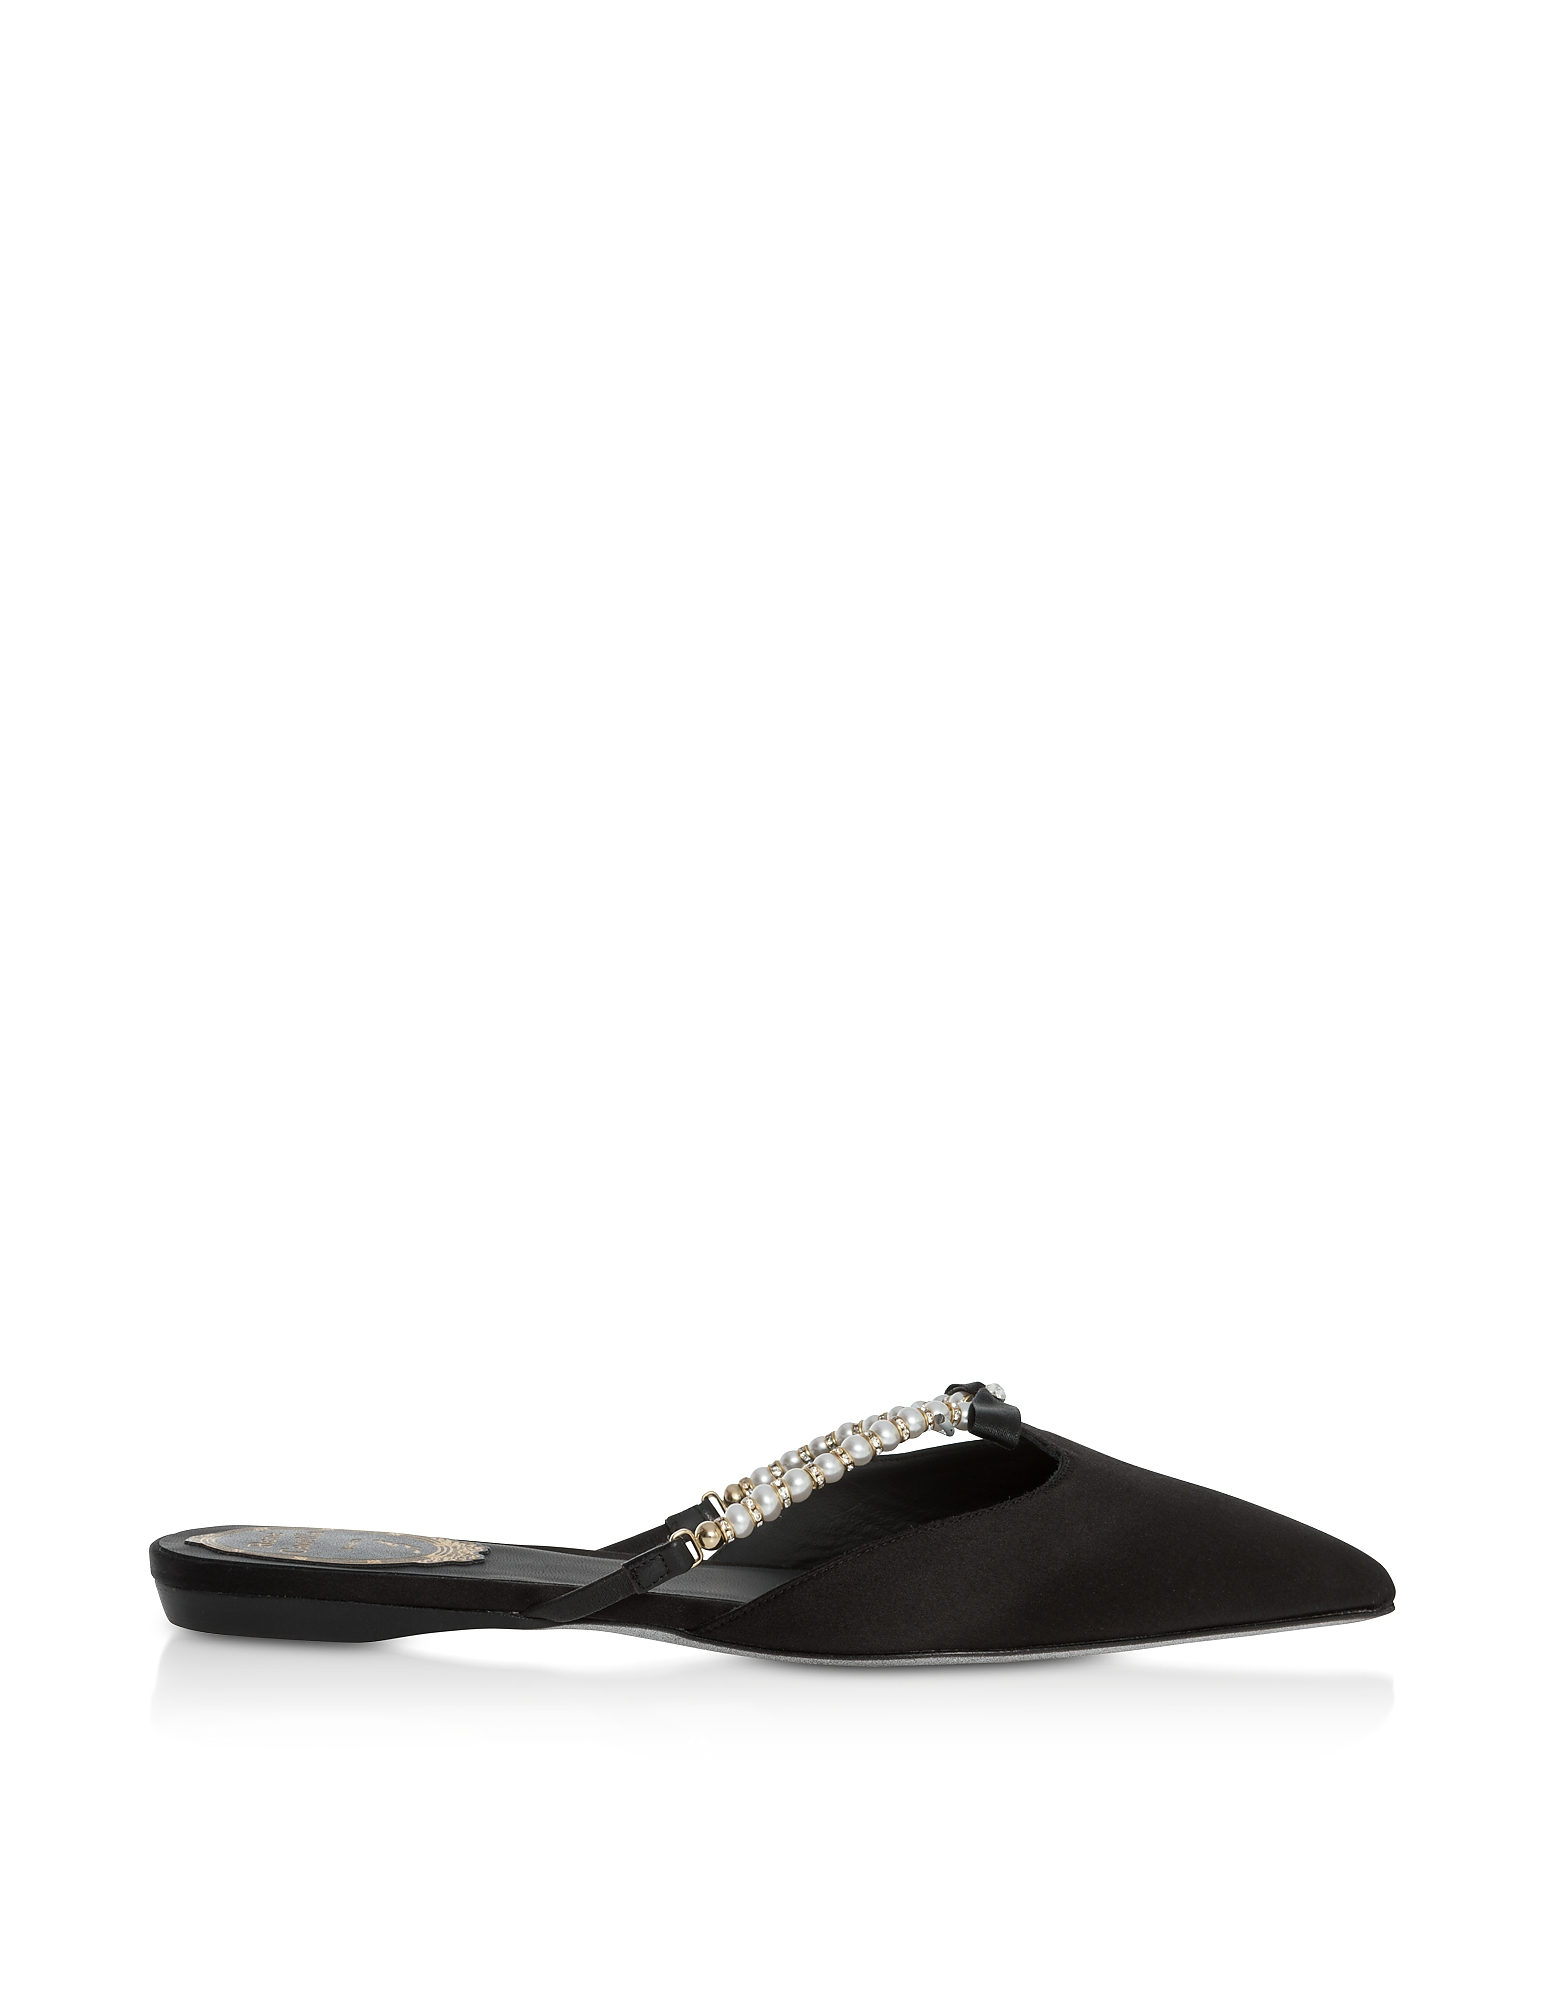 Rene Caovilla Shoes, Black Satin and Pearls Pointy Mules